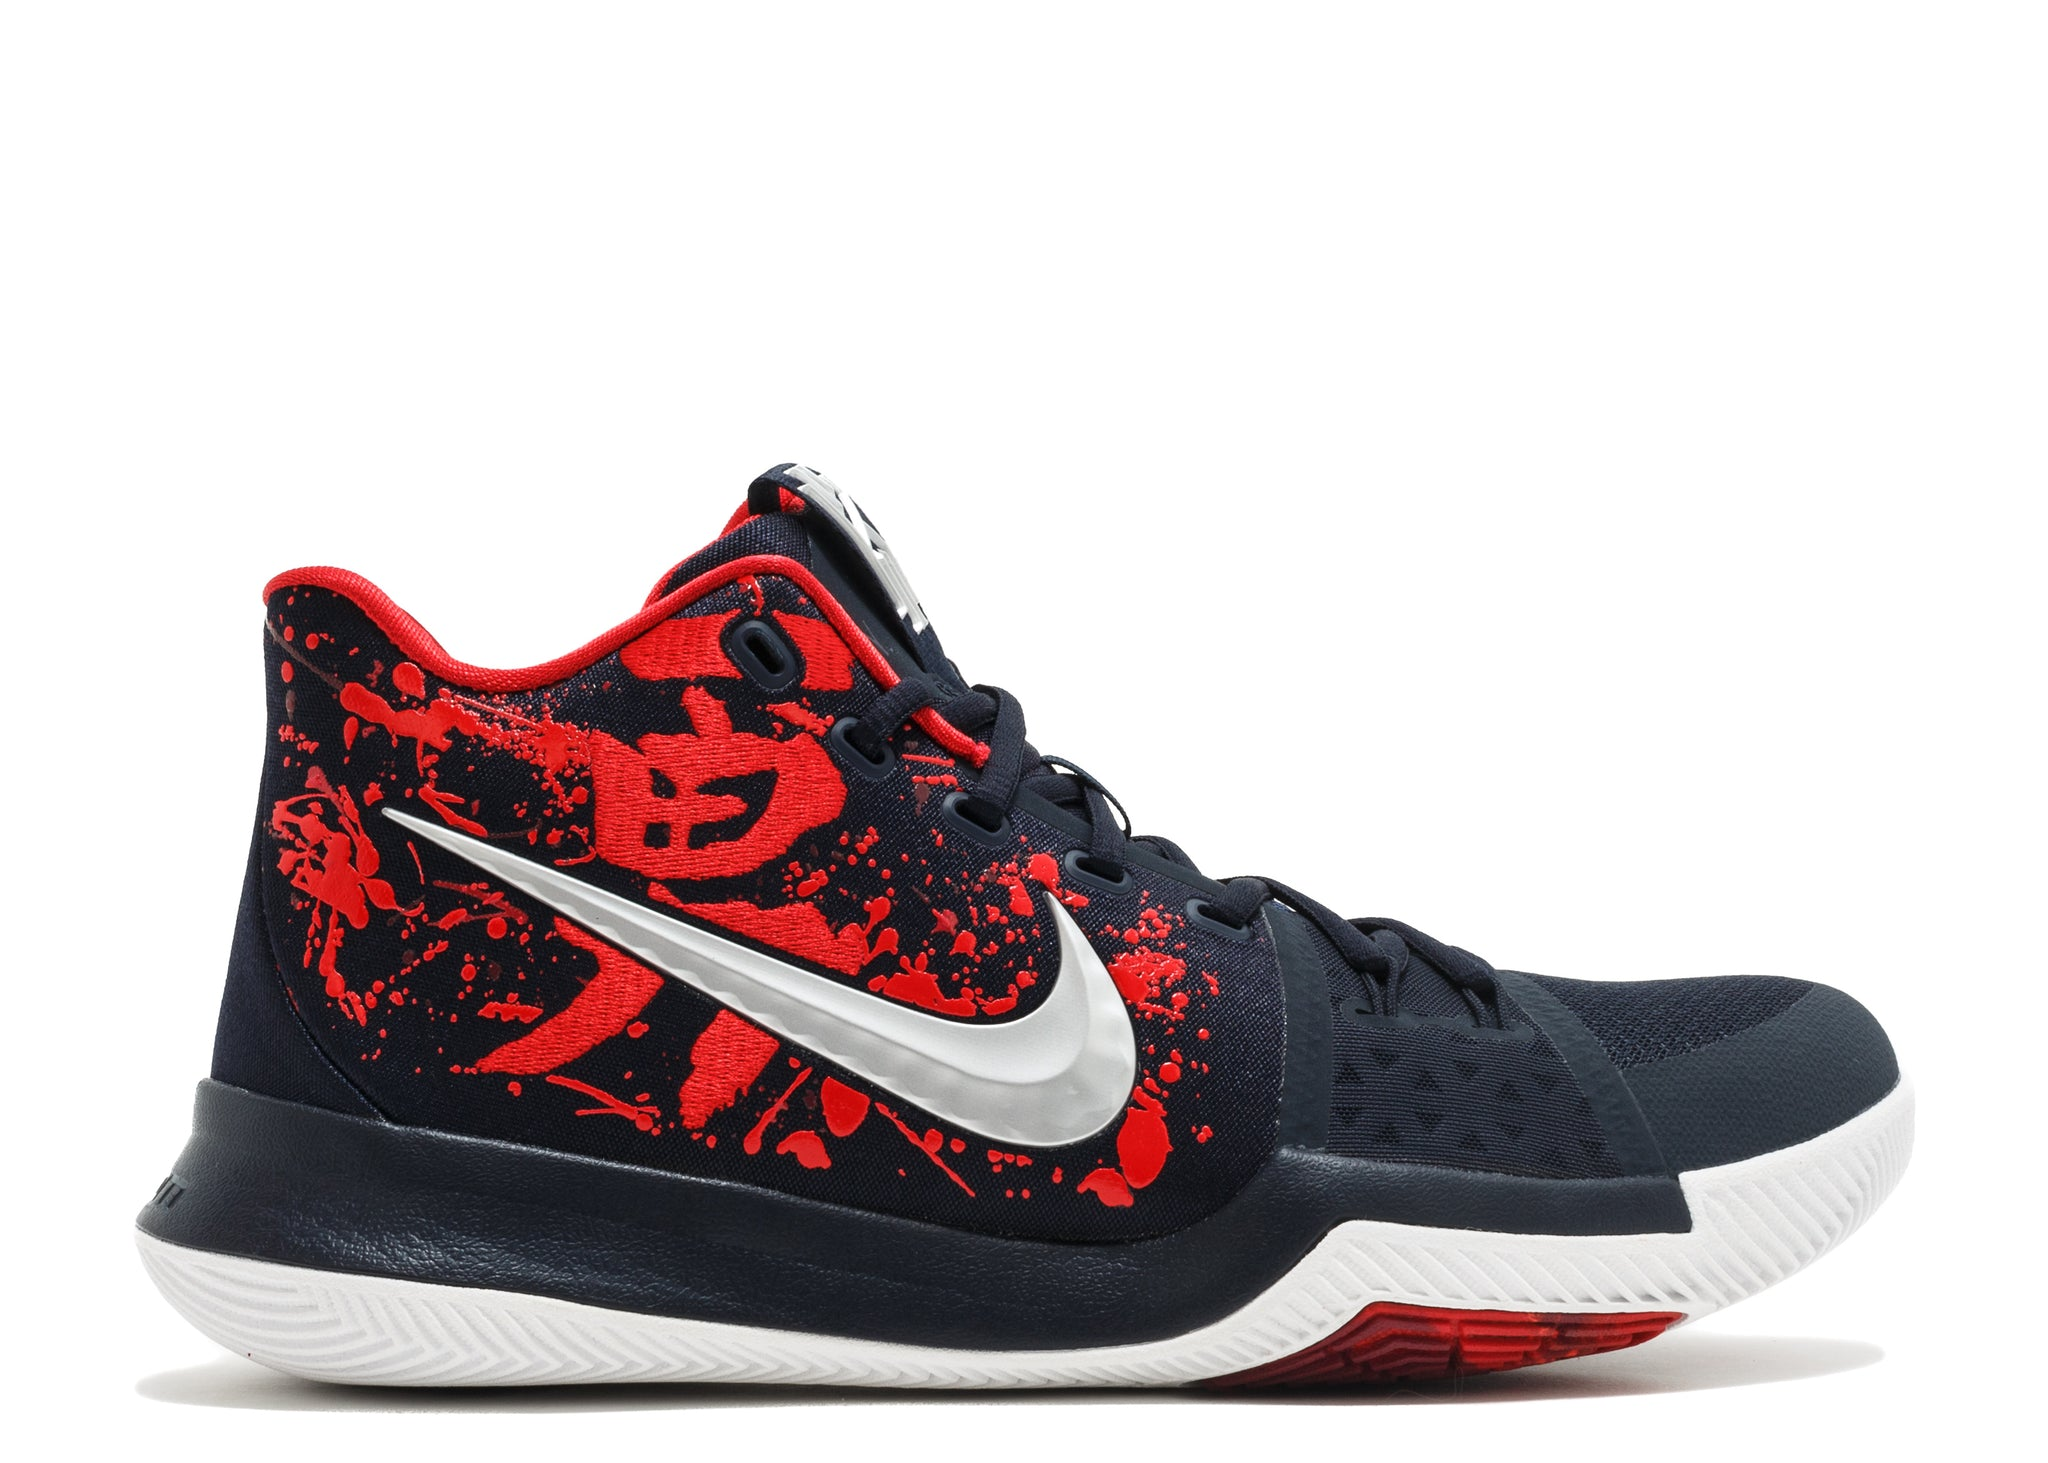 best website 755d6 3436f NIKE KYRIE 3 SAMURAI CHRISTMAS MYSTERY